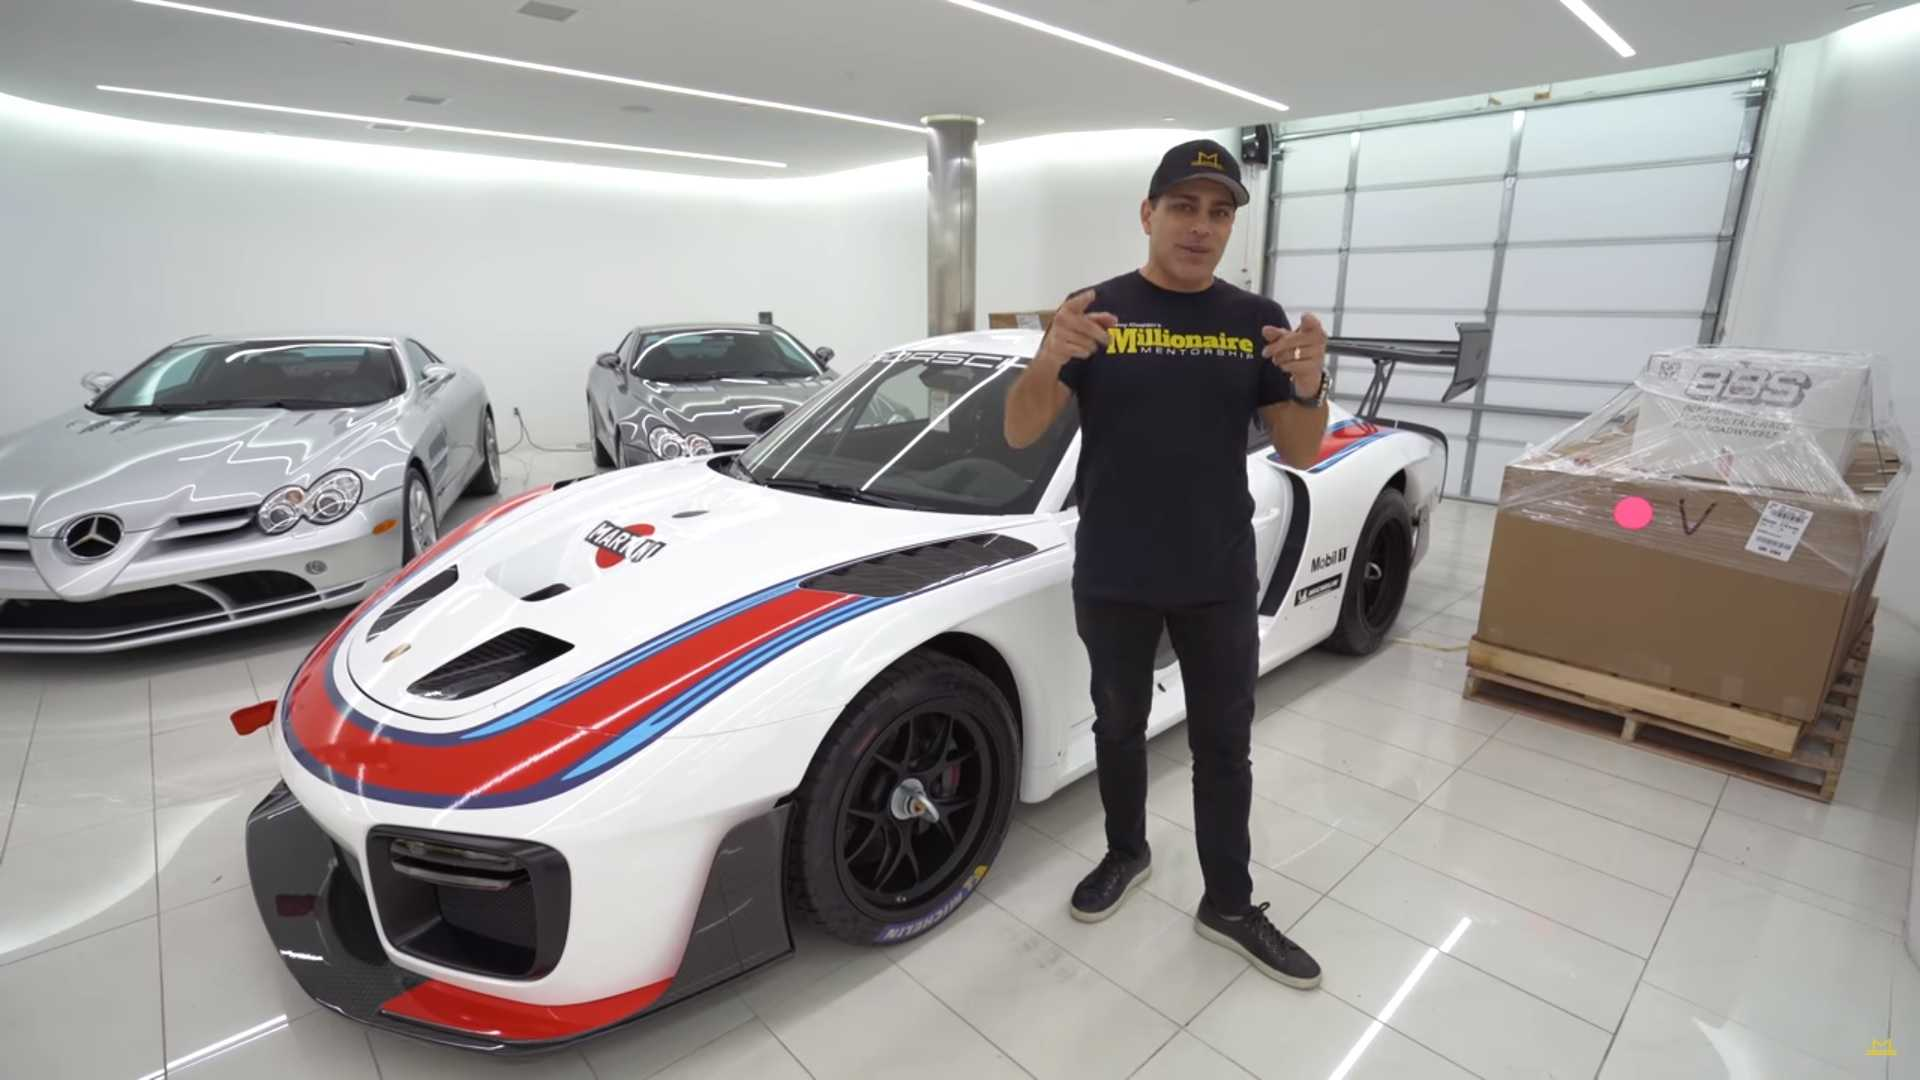 Porsche 935 owner gives a tour of his 911 GT2 RS-based race car